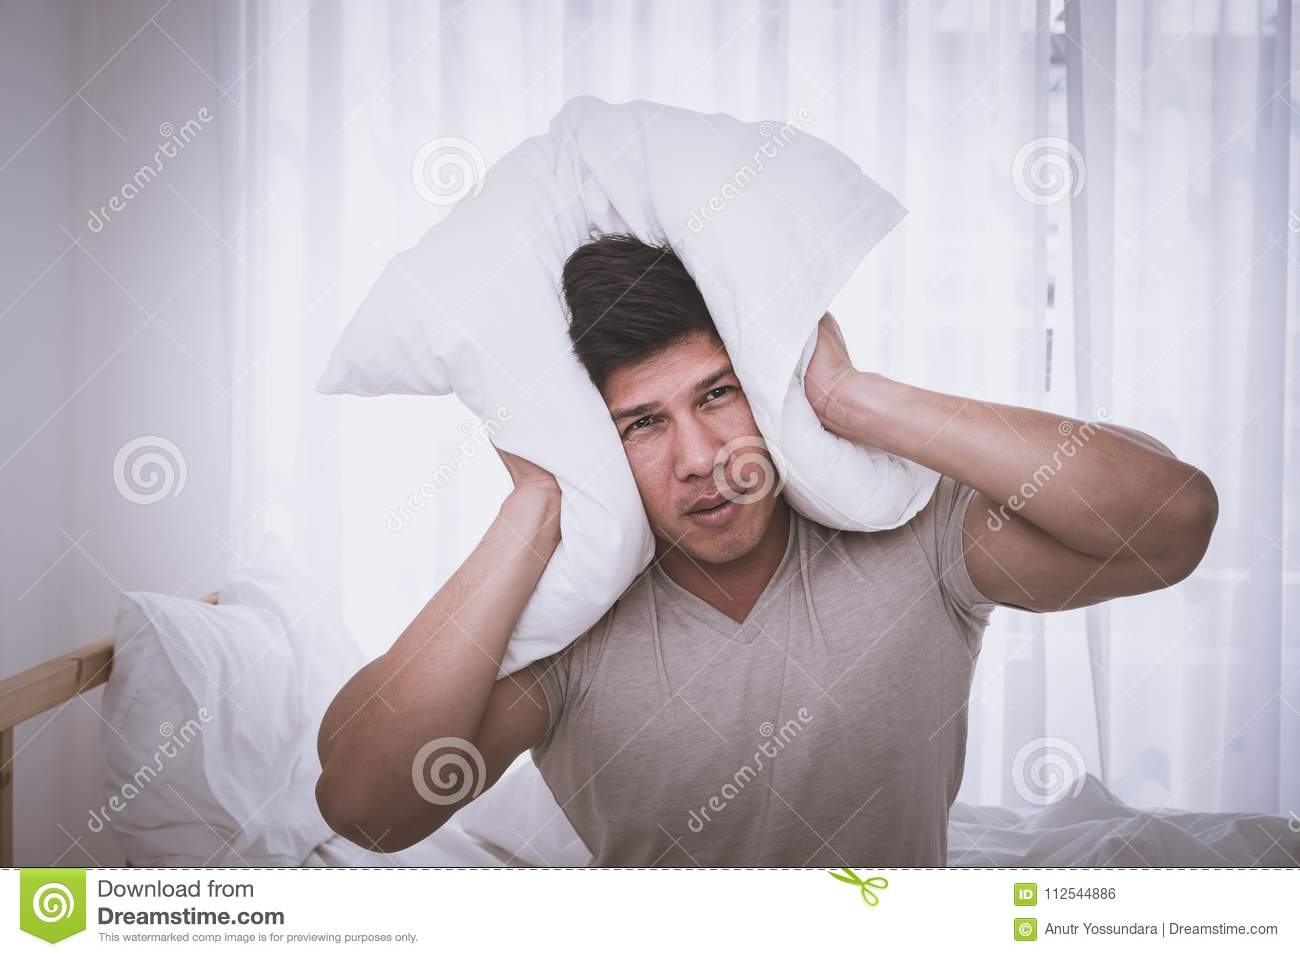 Sleepless male cover head fro noise and headache